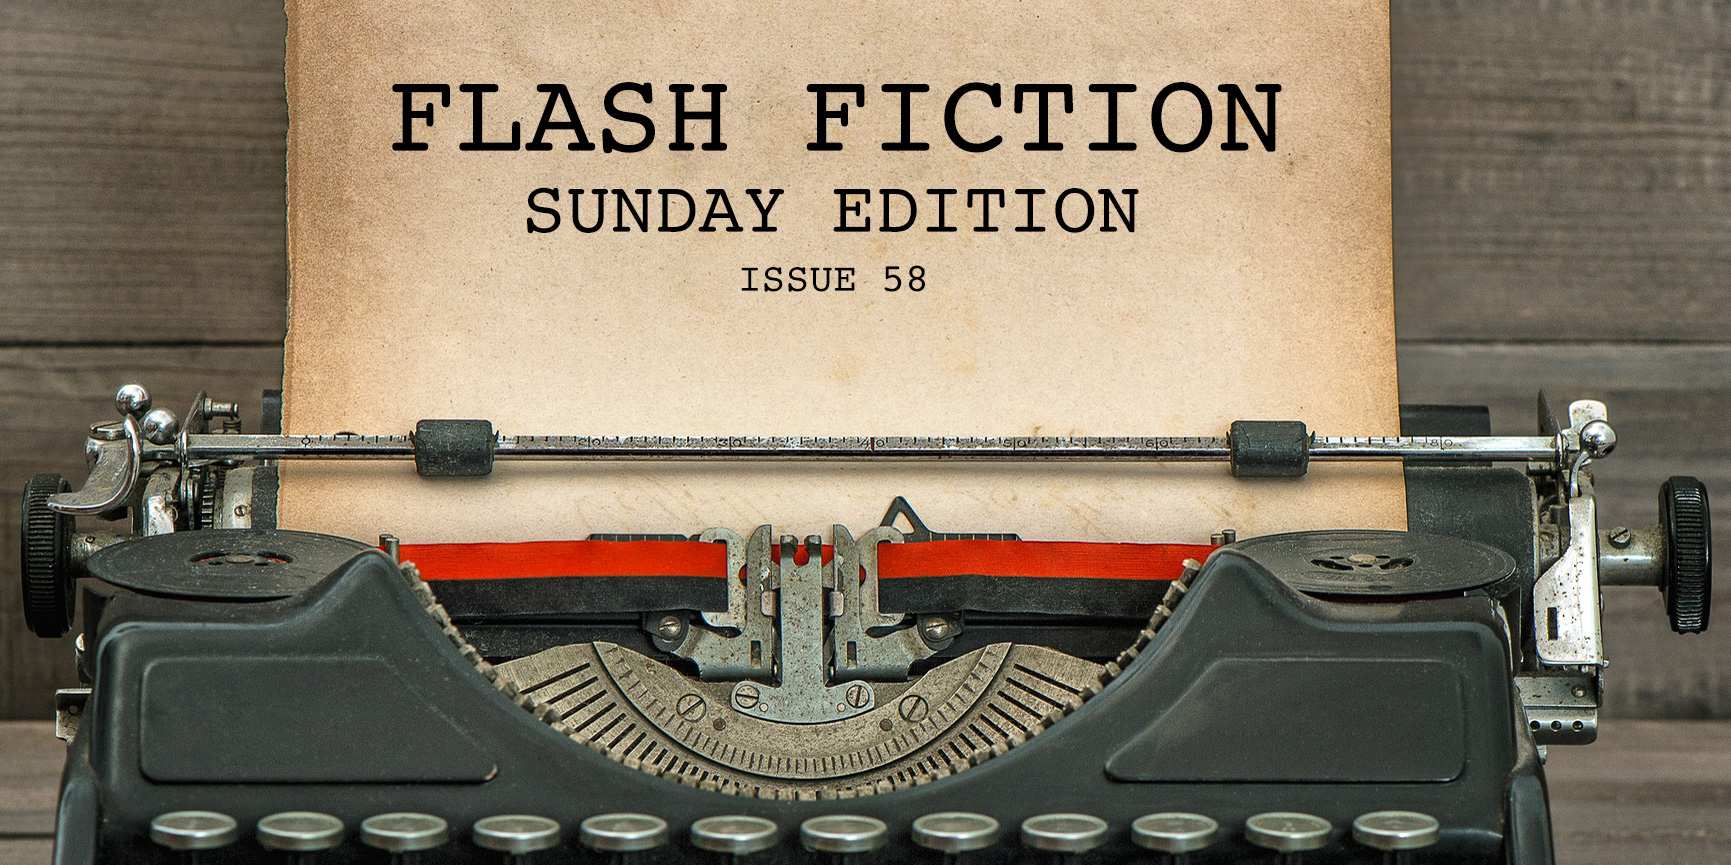 Flash Fiction Sunday Edition - Issue 58